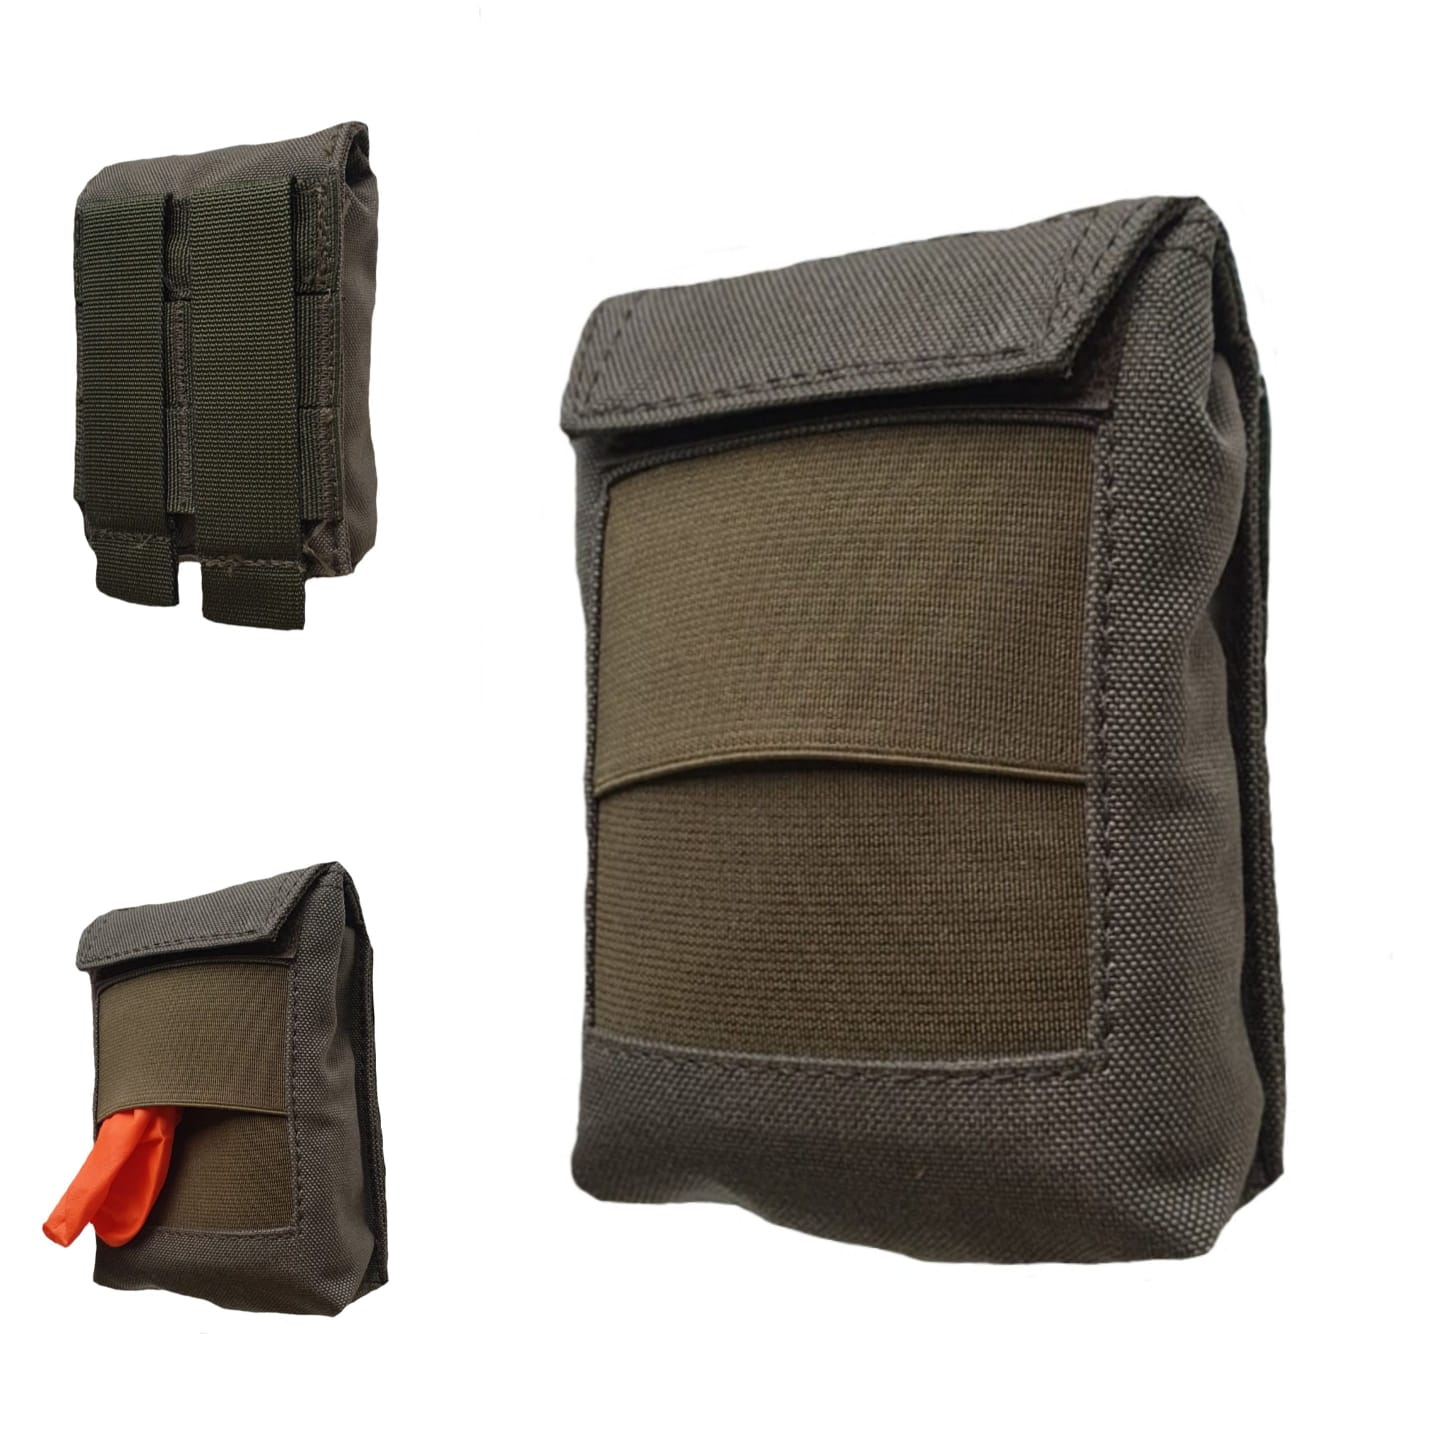 AUTHORITIES PRO POUCH FOR DISPOSABLE GLOVES RANGER GREEN